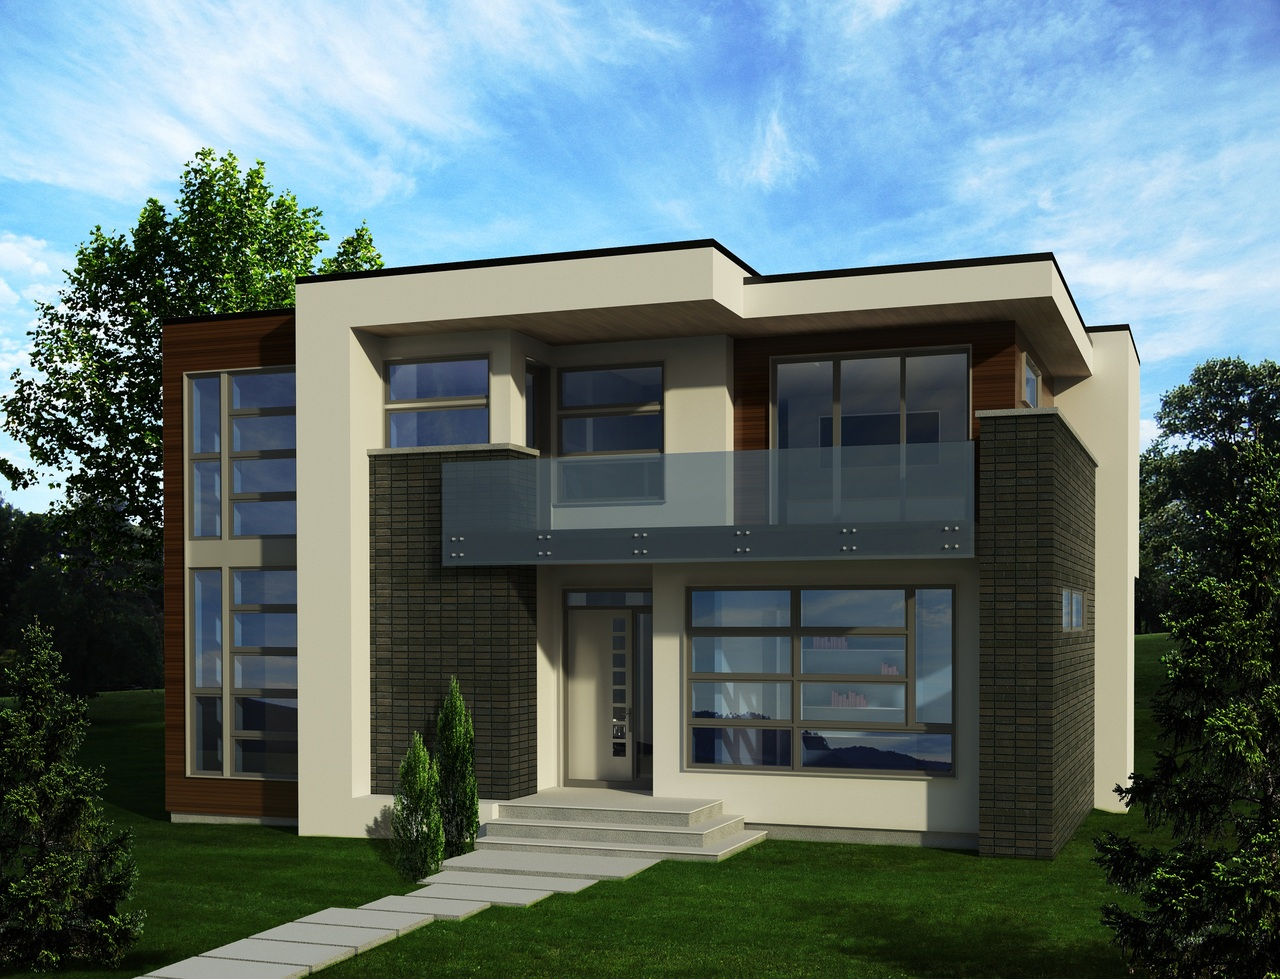 The Development Permit for this new custom single-detached home took 5 short weeks from submission to release, just in time to start construction before winter!